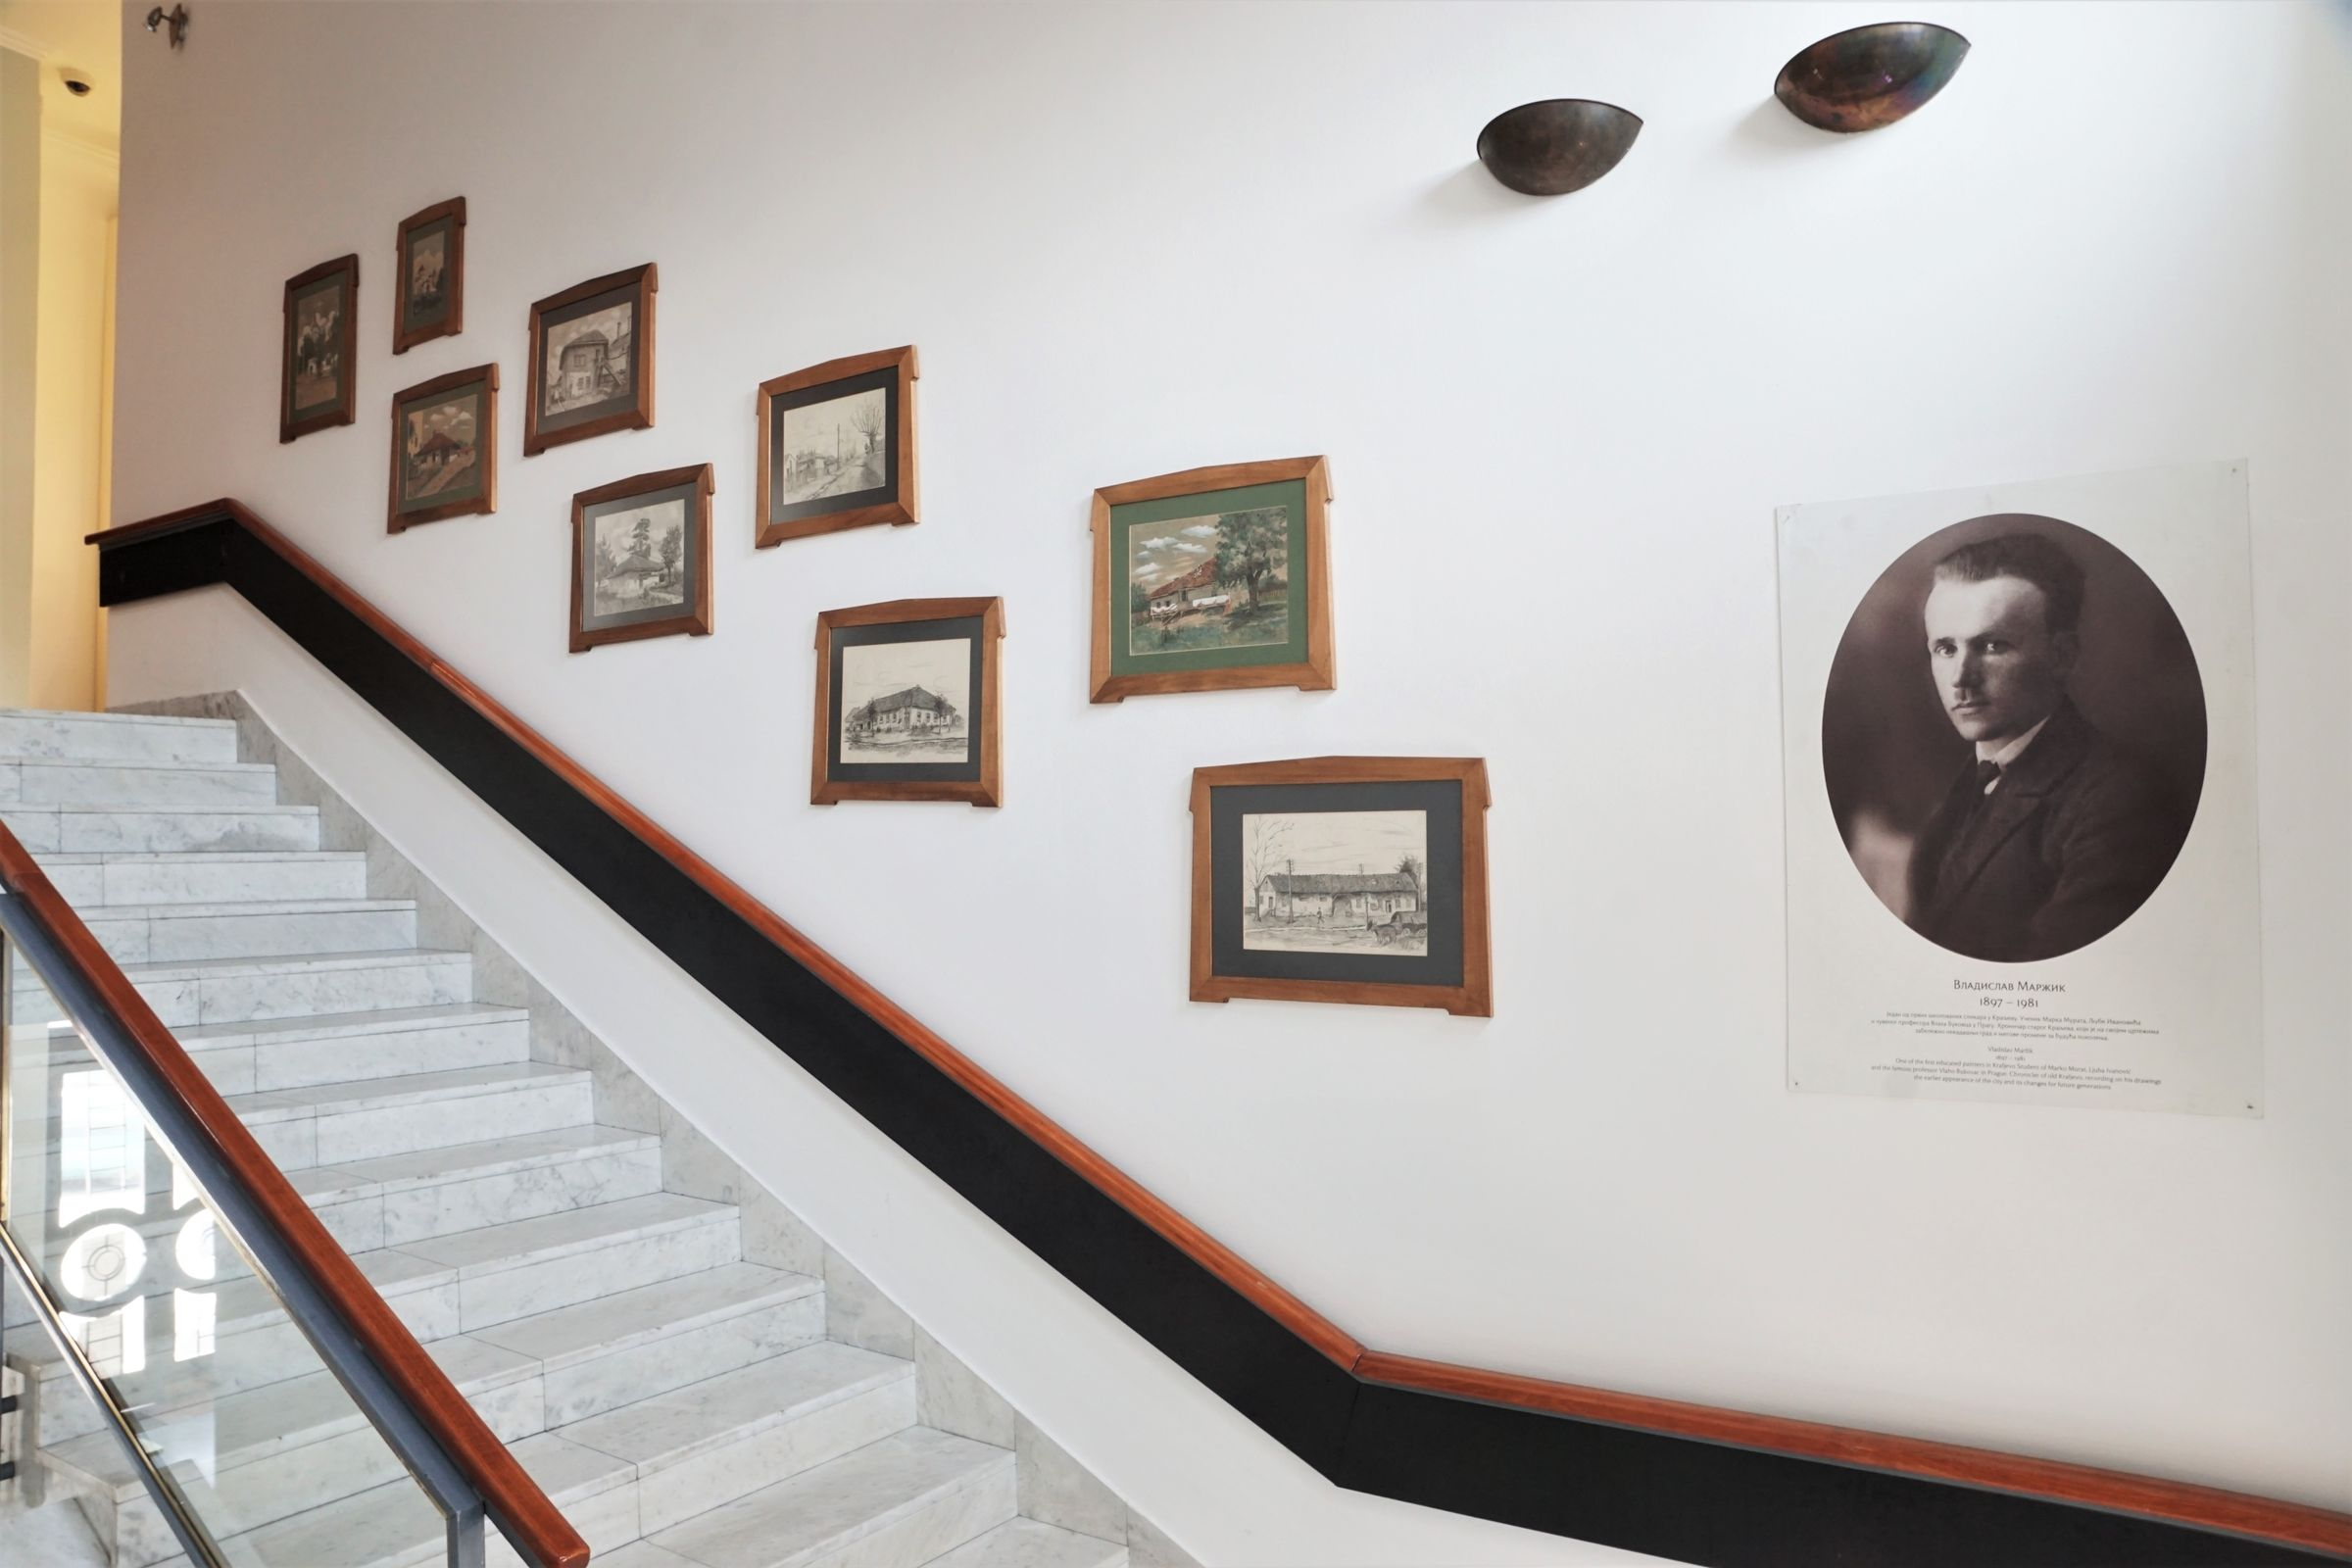 Works by painter Vladislav Maržik with the theme of the old Kraljevo on the steps towards the Hallway of the Permanent Exhibition